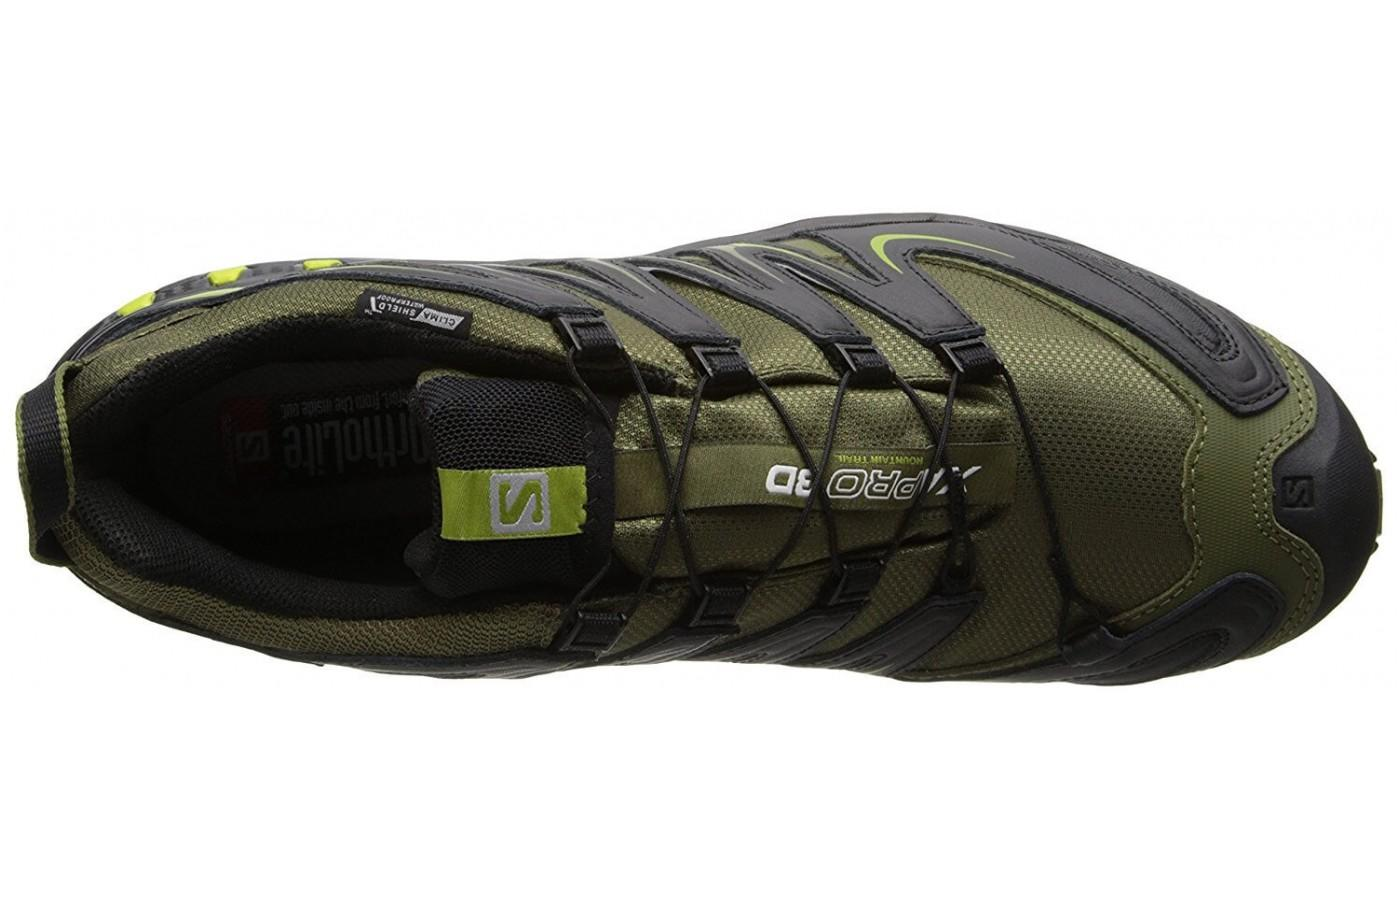 the upper of the Salomon XA Pro 3D CS WP has ClimaShield lining that's waterproof and keeps the foot warm